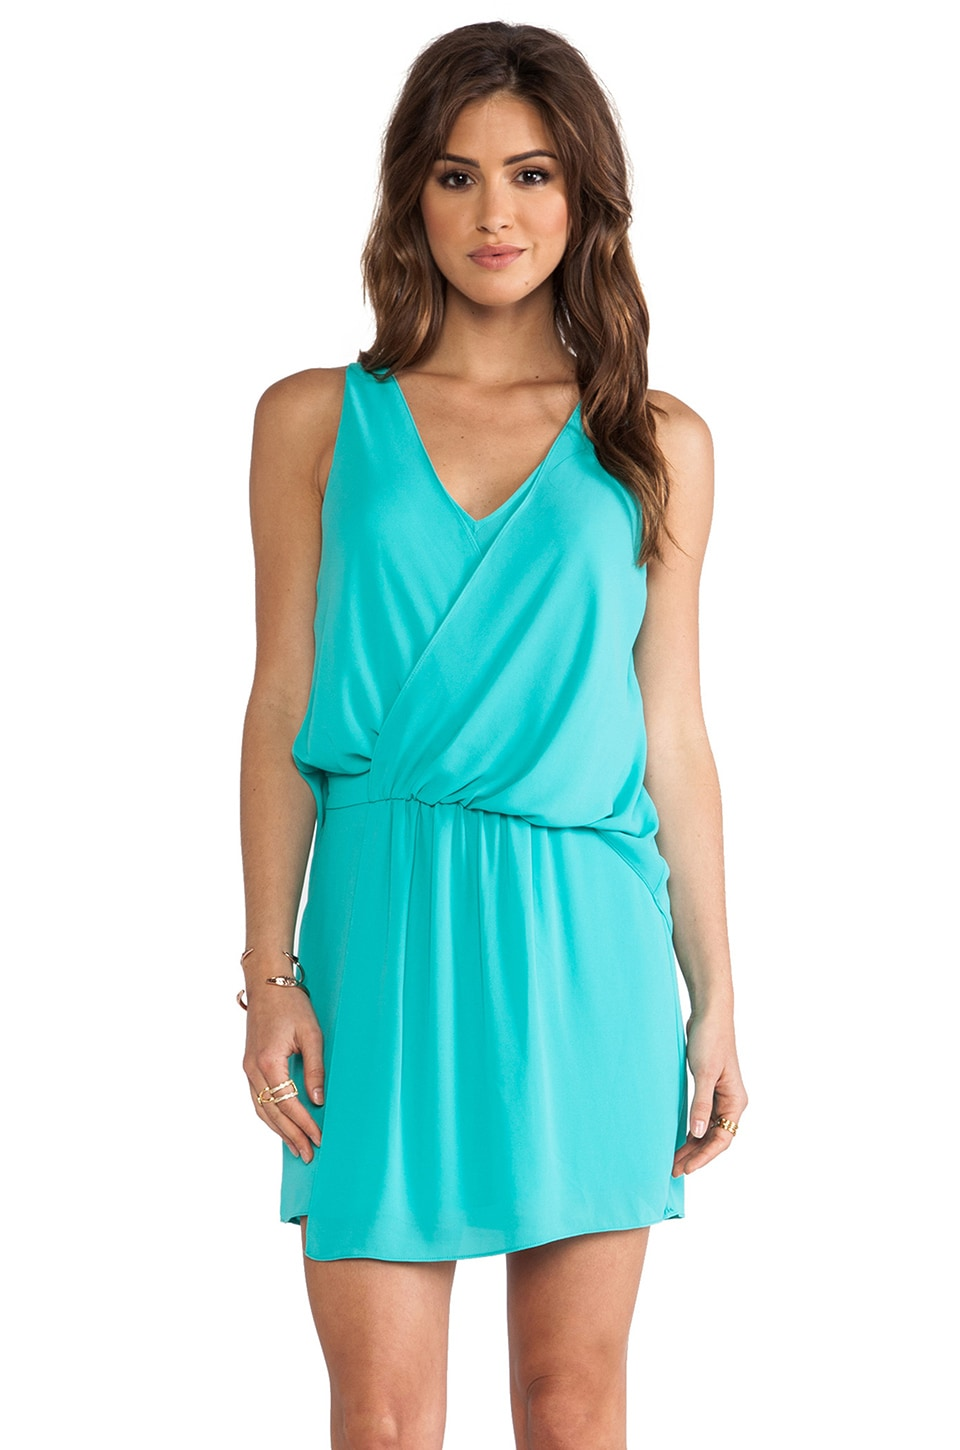 Elizabeth and James Tianna Dress in Turquoise